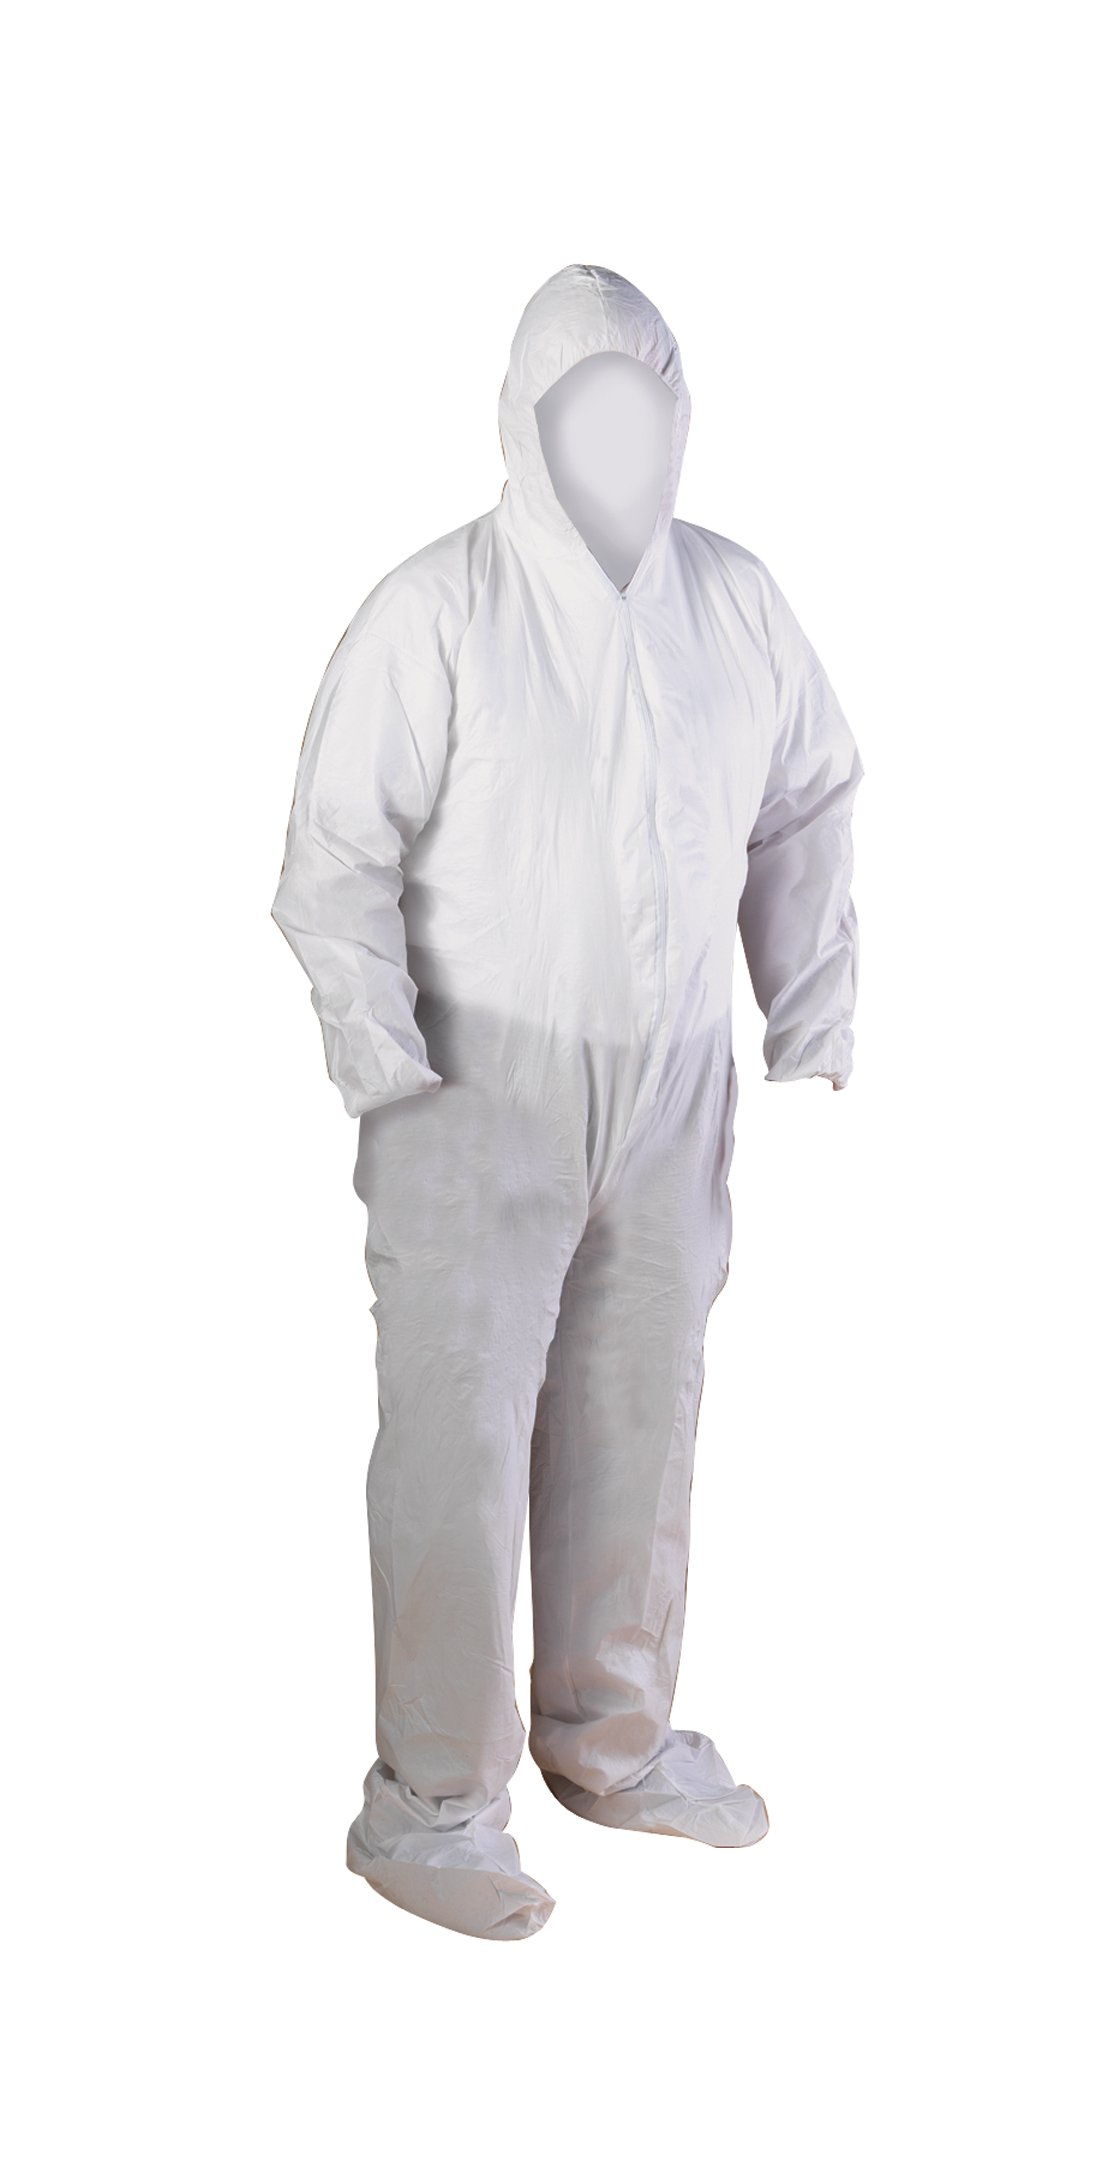 High Five AC195 Microporous WBP Coverall with Hood, Boots, Zip Front, Elastic Wrists And Ankles, 2X-Large, White (Case of 25) by High Five